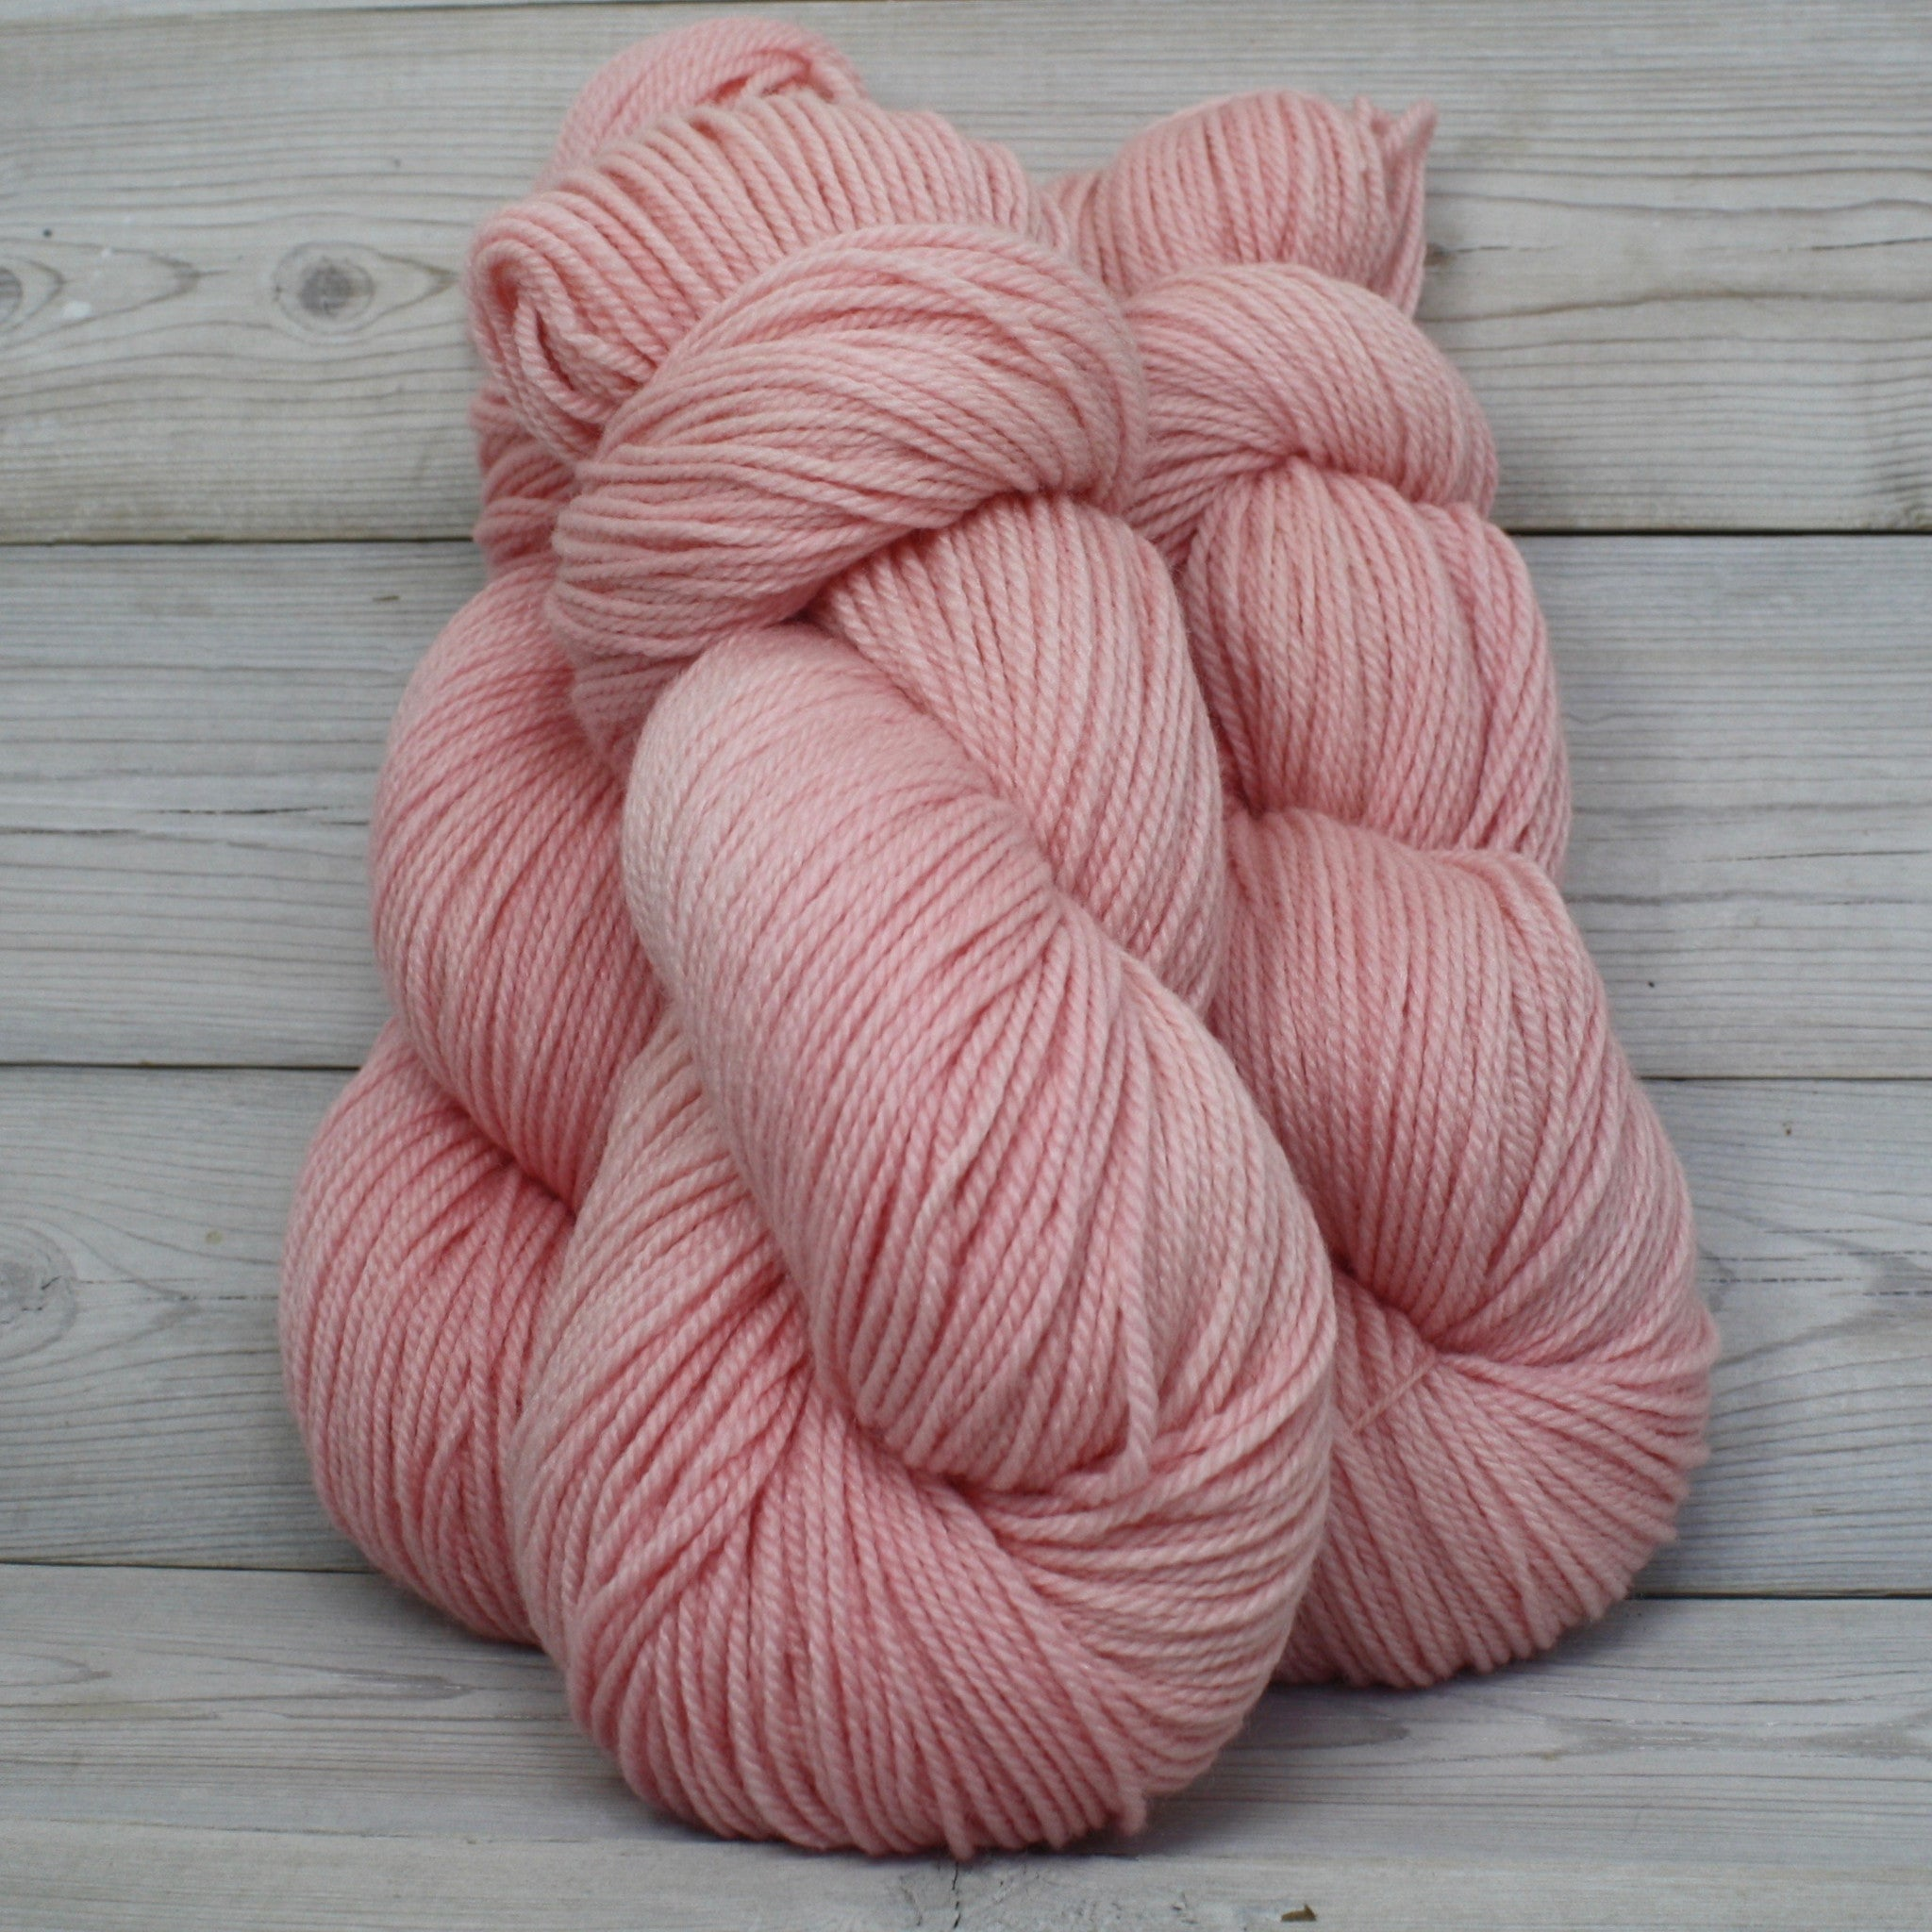 Zeta Yarn | Colorway: Ballet Slipper